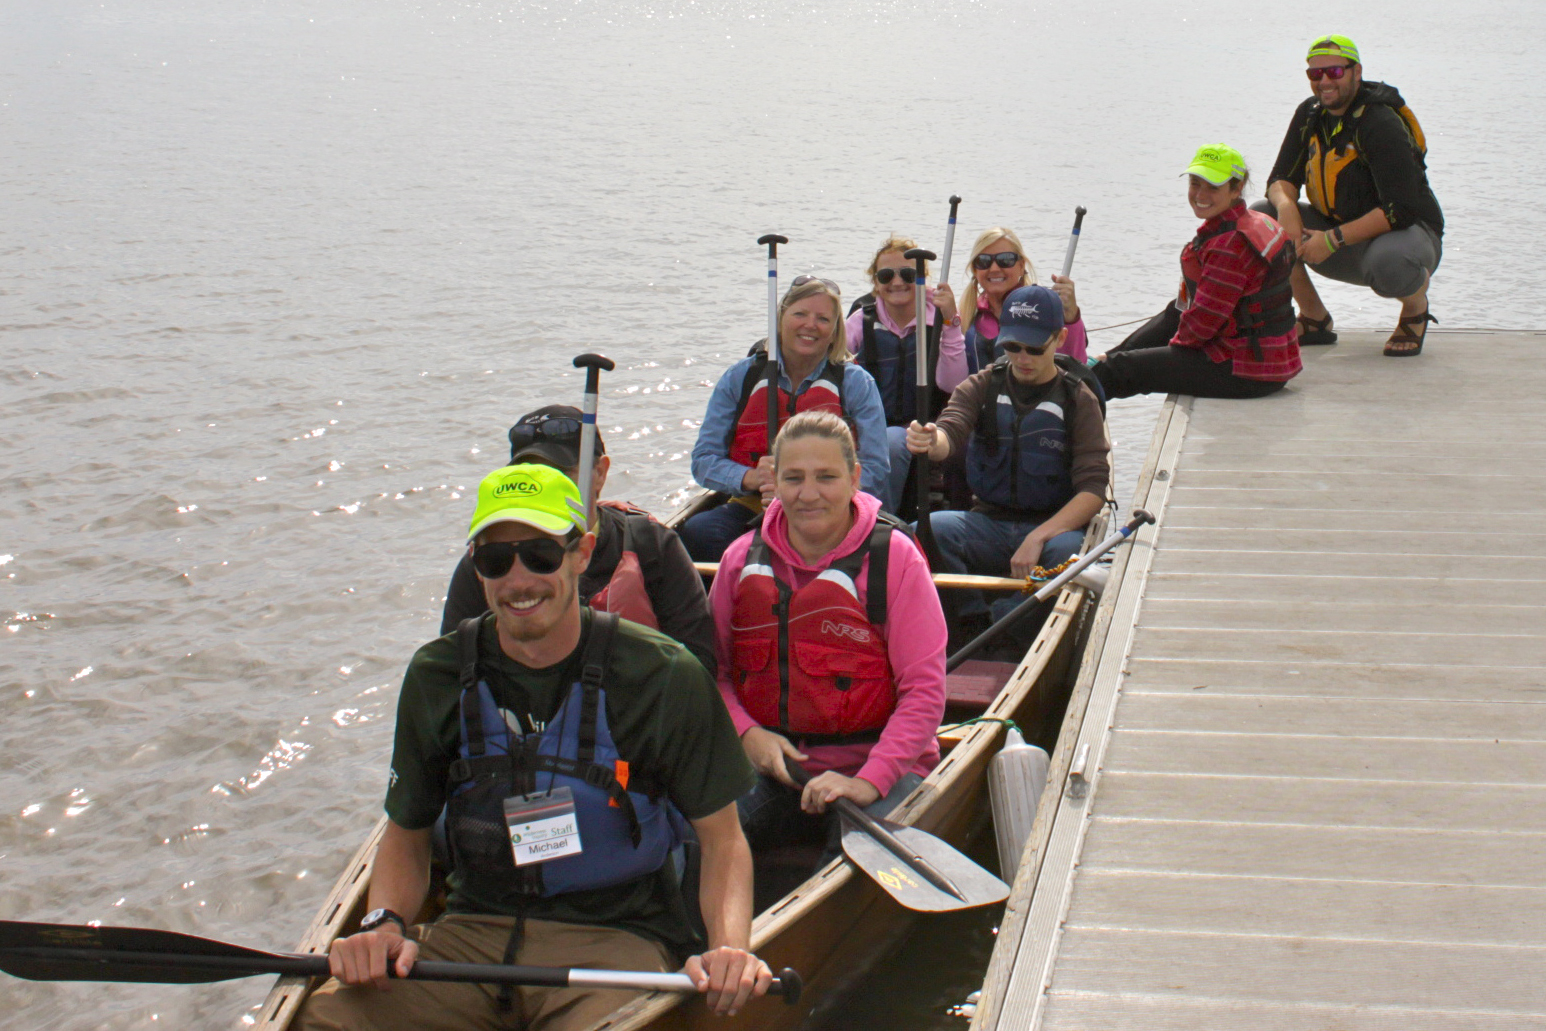 Participants are ready to paddle the canoe away from the dock on the Savannah River